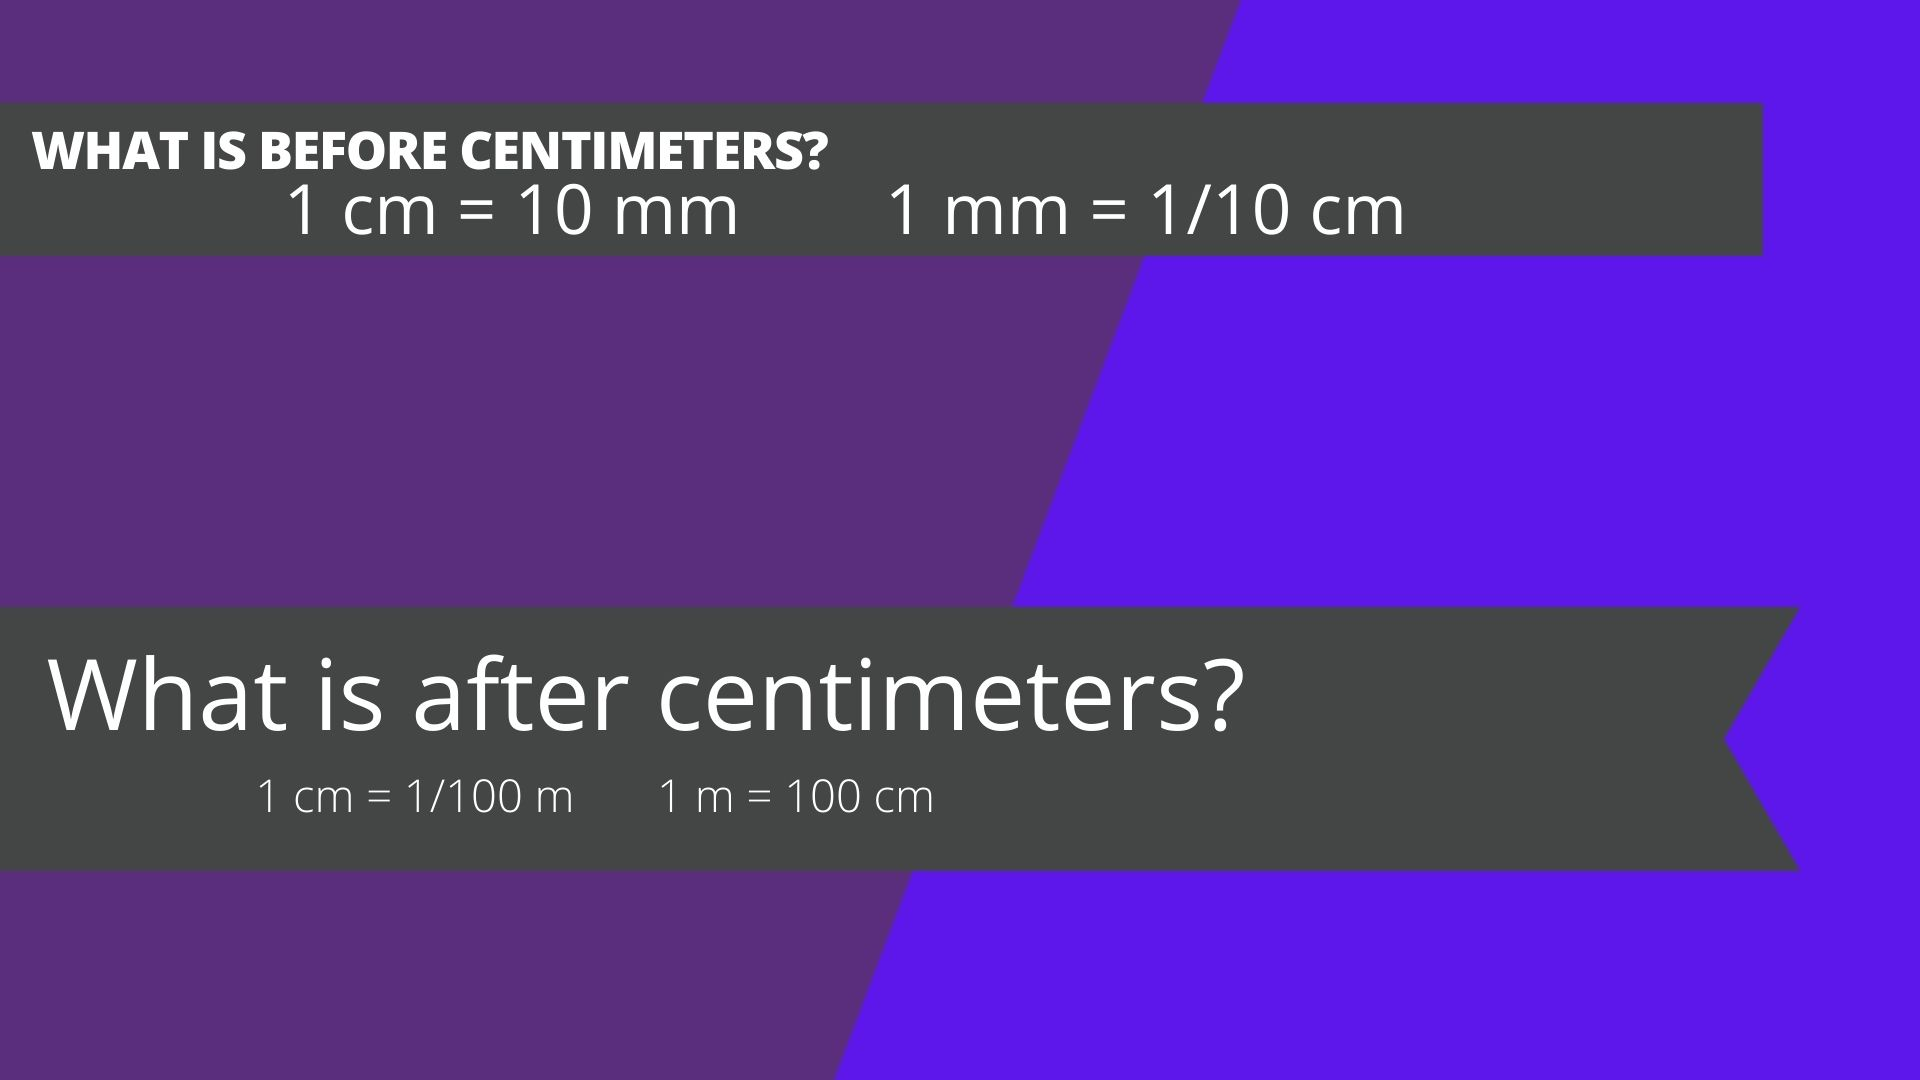 What is before centimeters? What is after centimeters?